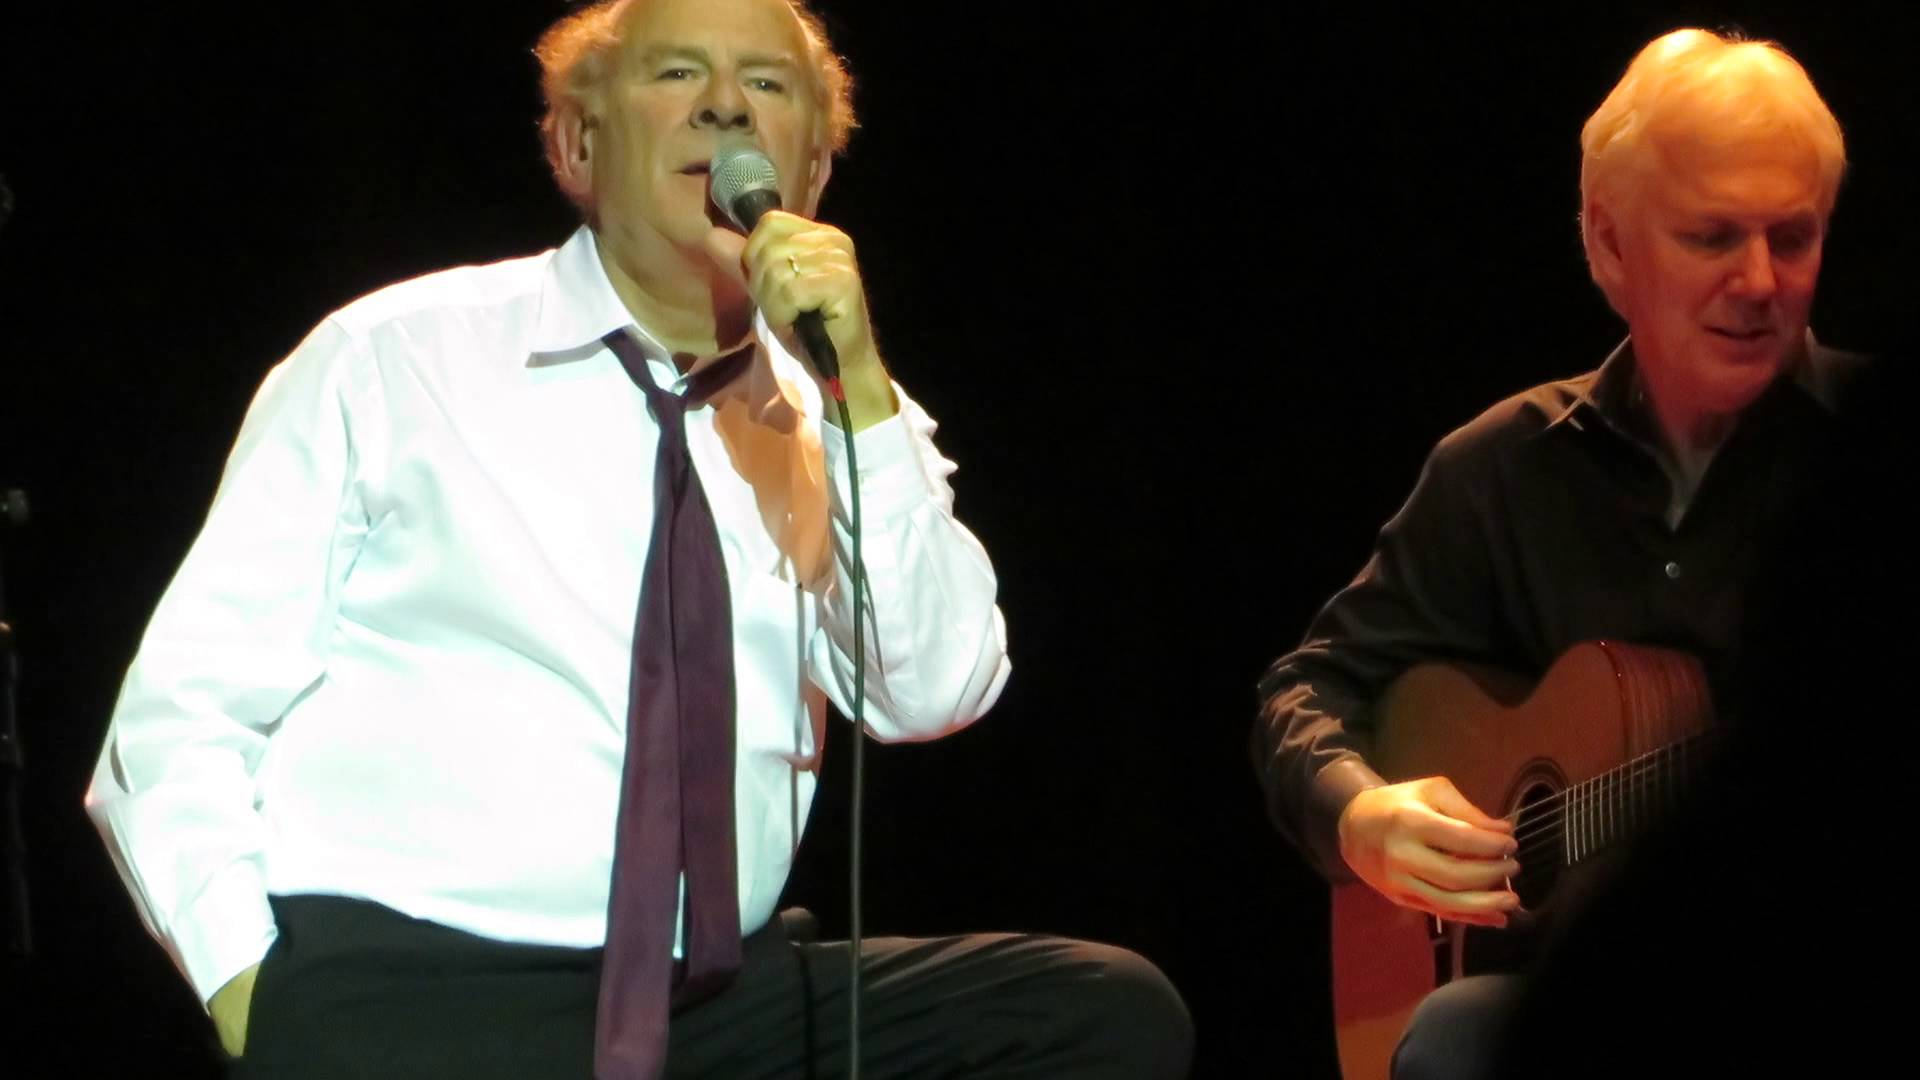 99 Miles From La Art Garfunkel must see: art garfunkel at carnegie hall, october 3rd, 2015